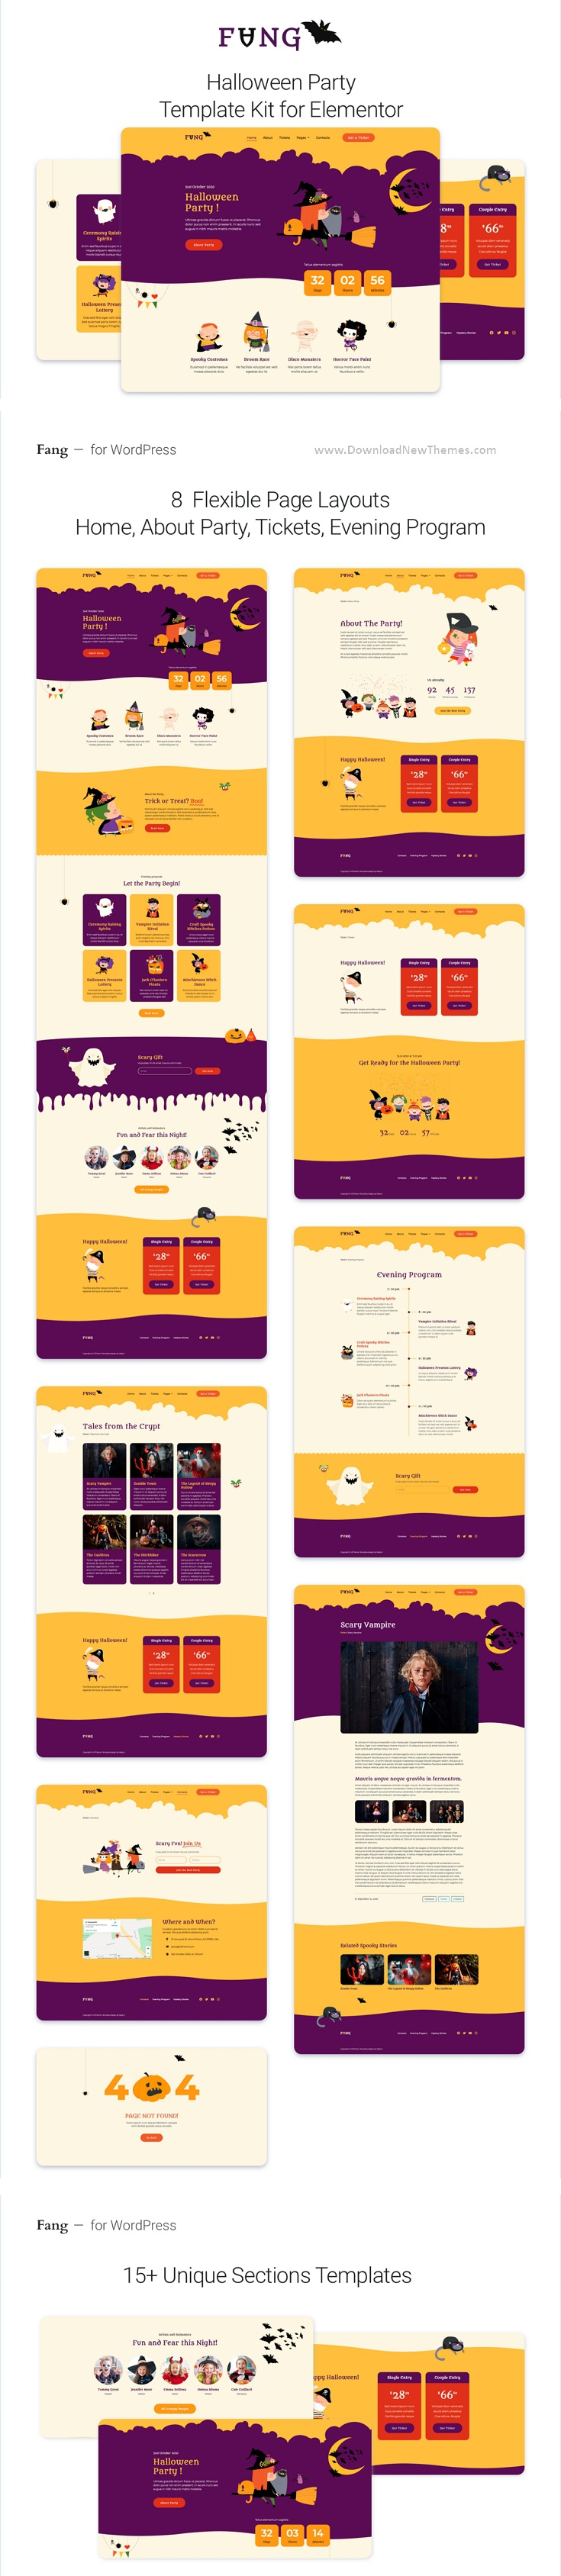 Halloween Party Template Kit for Elementor